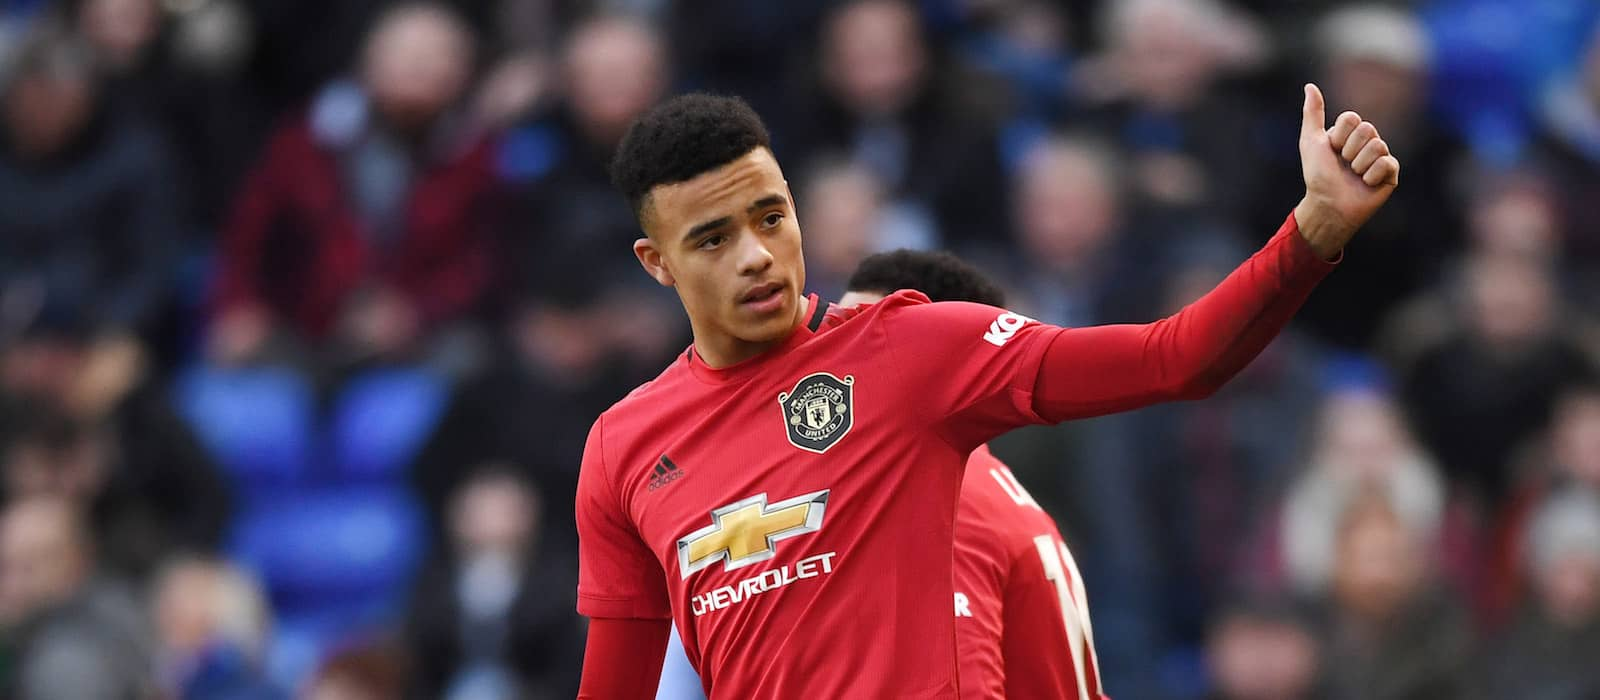 Manchester United fans react to Mason Greenwood's performance vs Tranmere